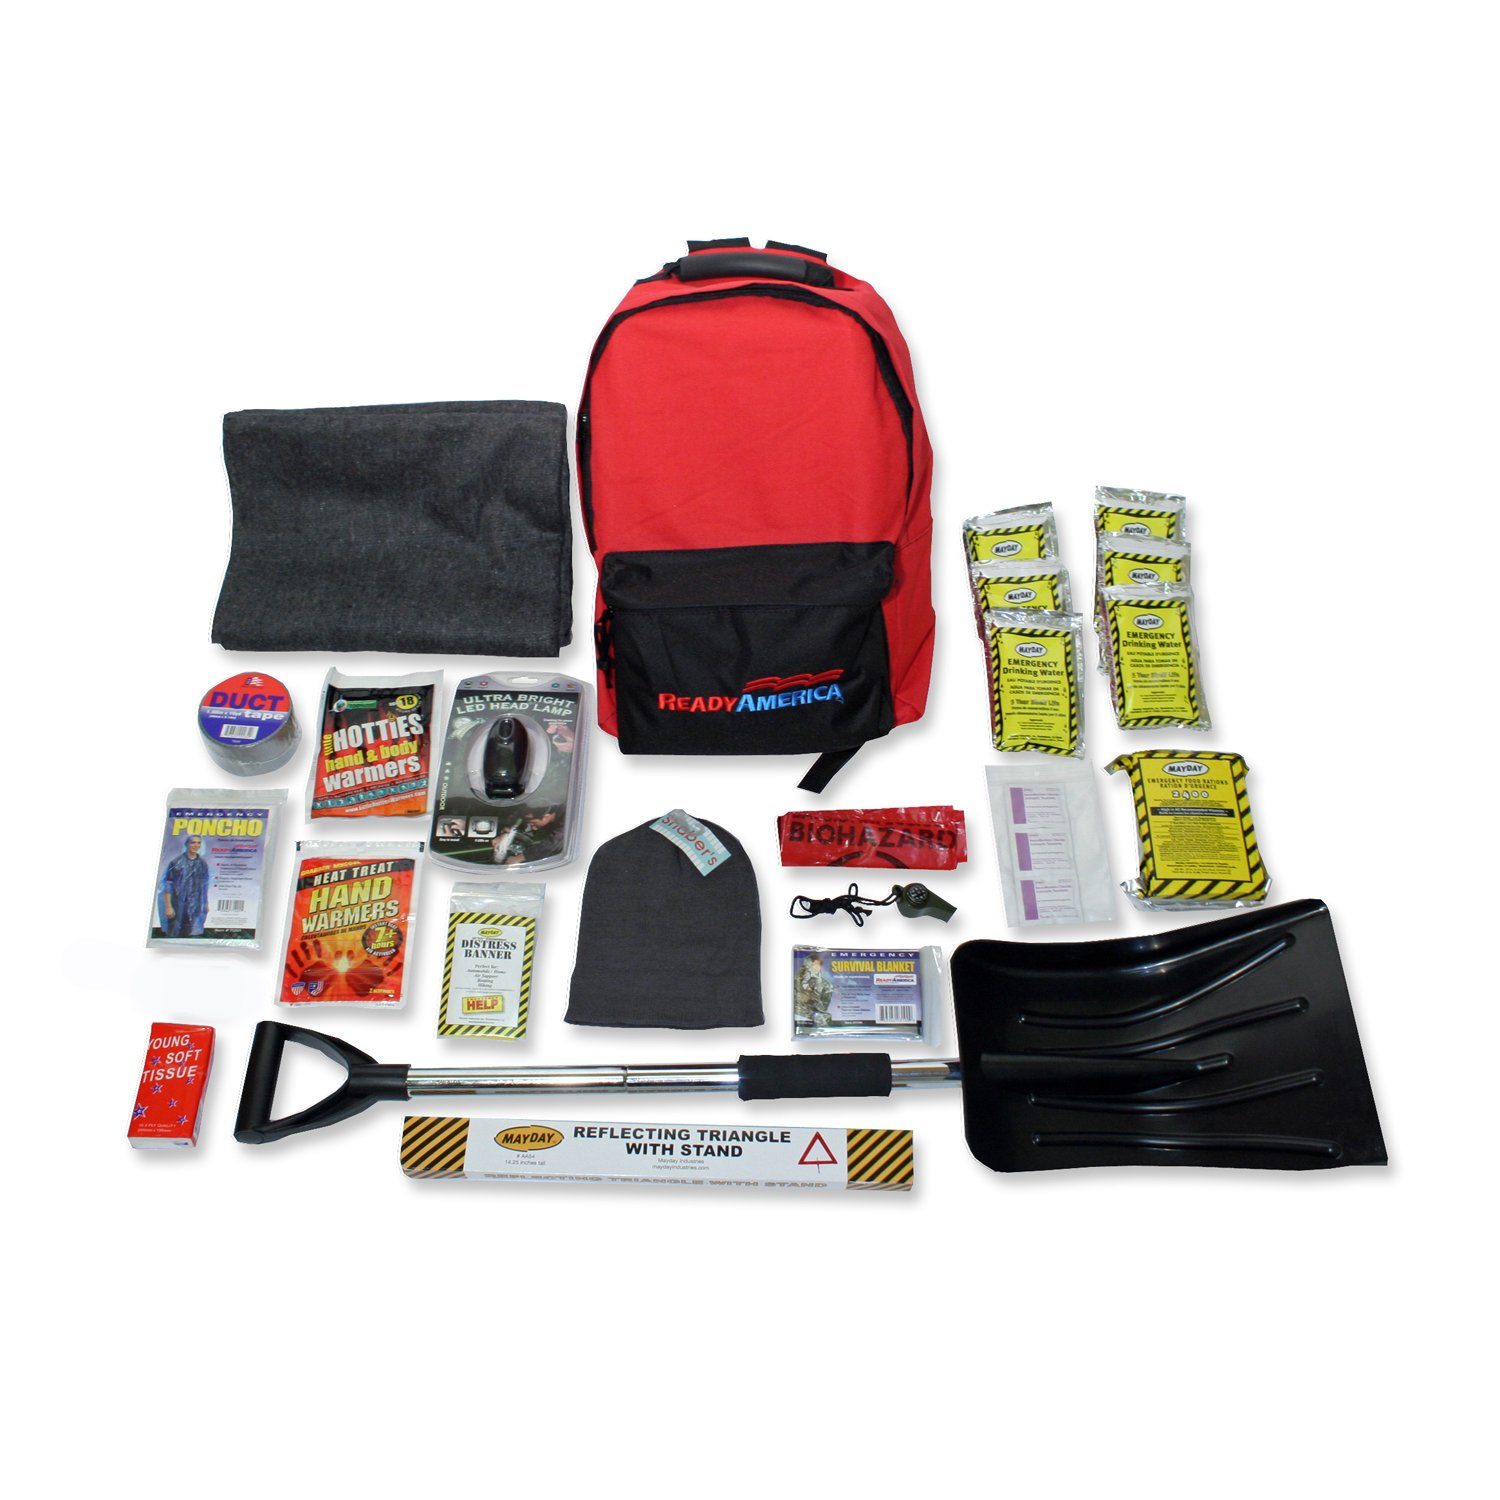 Ready America 70400 Cold Weather Survival Kit for One Person by Ready America